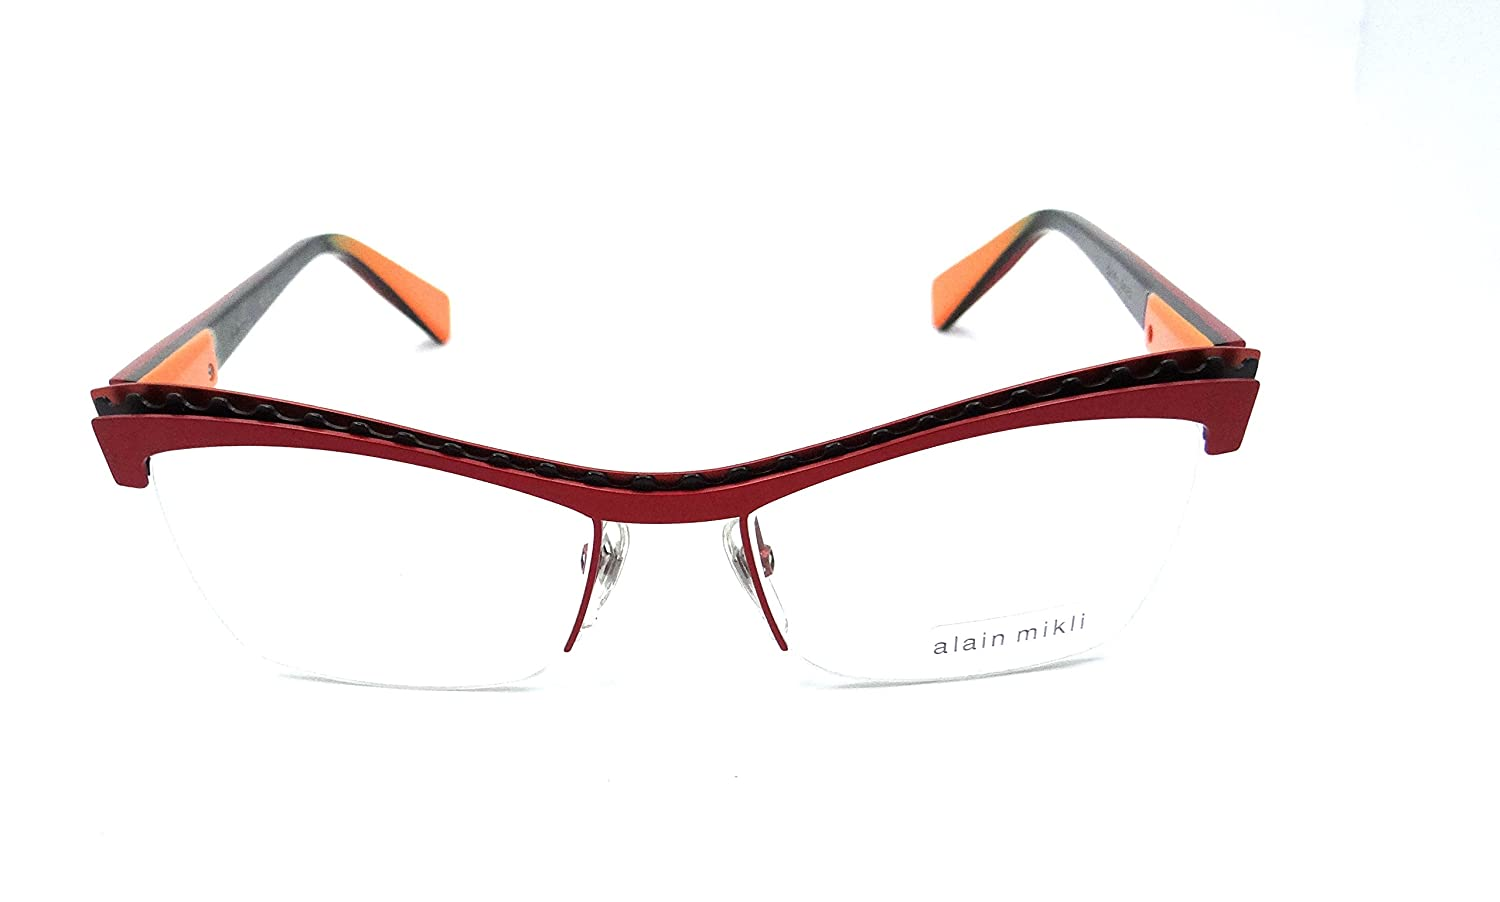 9a490ba0a2 Alain Mikli Rx Eyeglasses Frames A02017 M0JA 52x17 Red   Black   Orange  France at Amazon Men s Clothing store